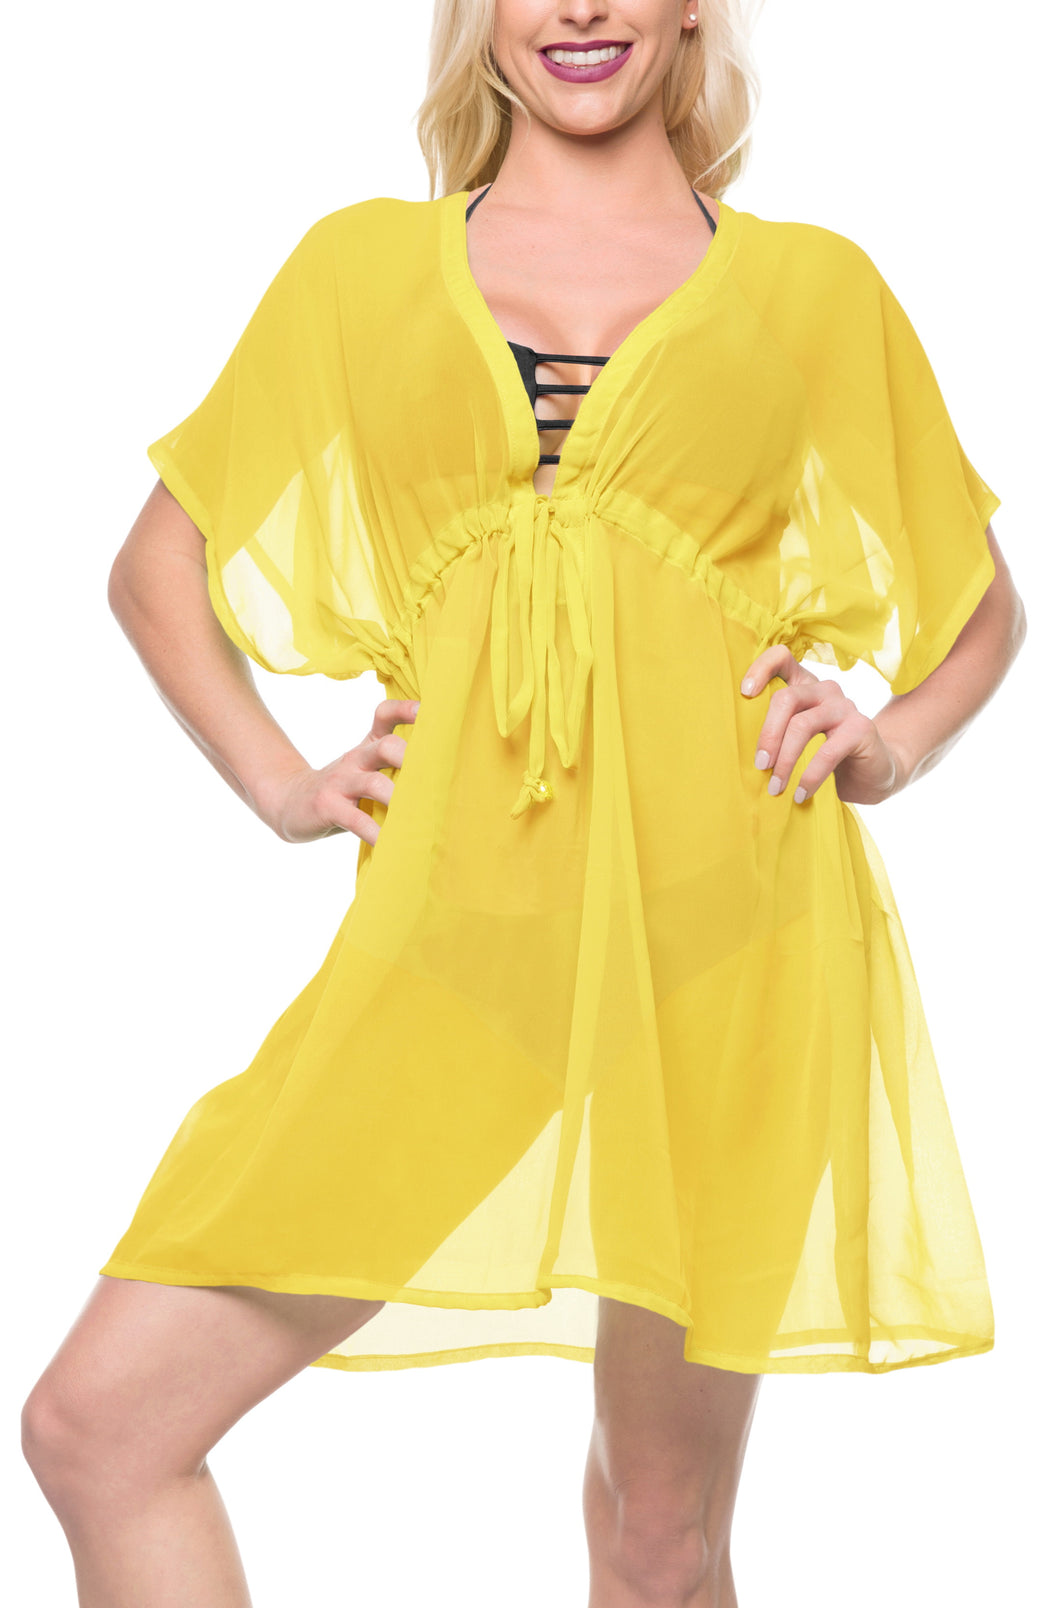 LA LEELA Bikni Swimwear Chiffon Solid Swim Tunic Cover Ups OSFM 14-24 [L-3X] Light Yellow_927